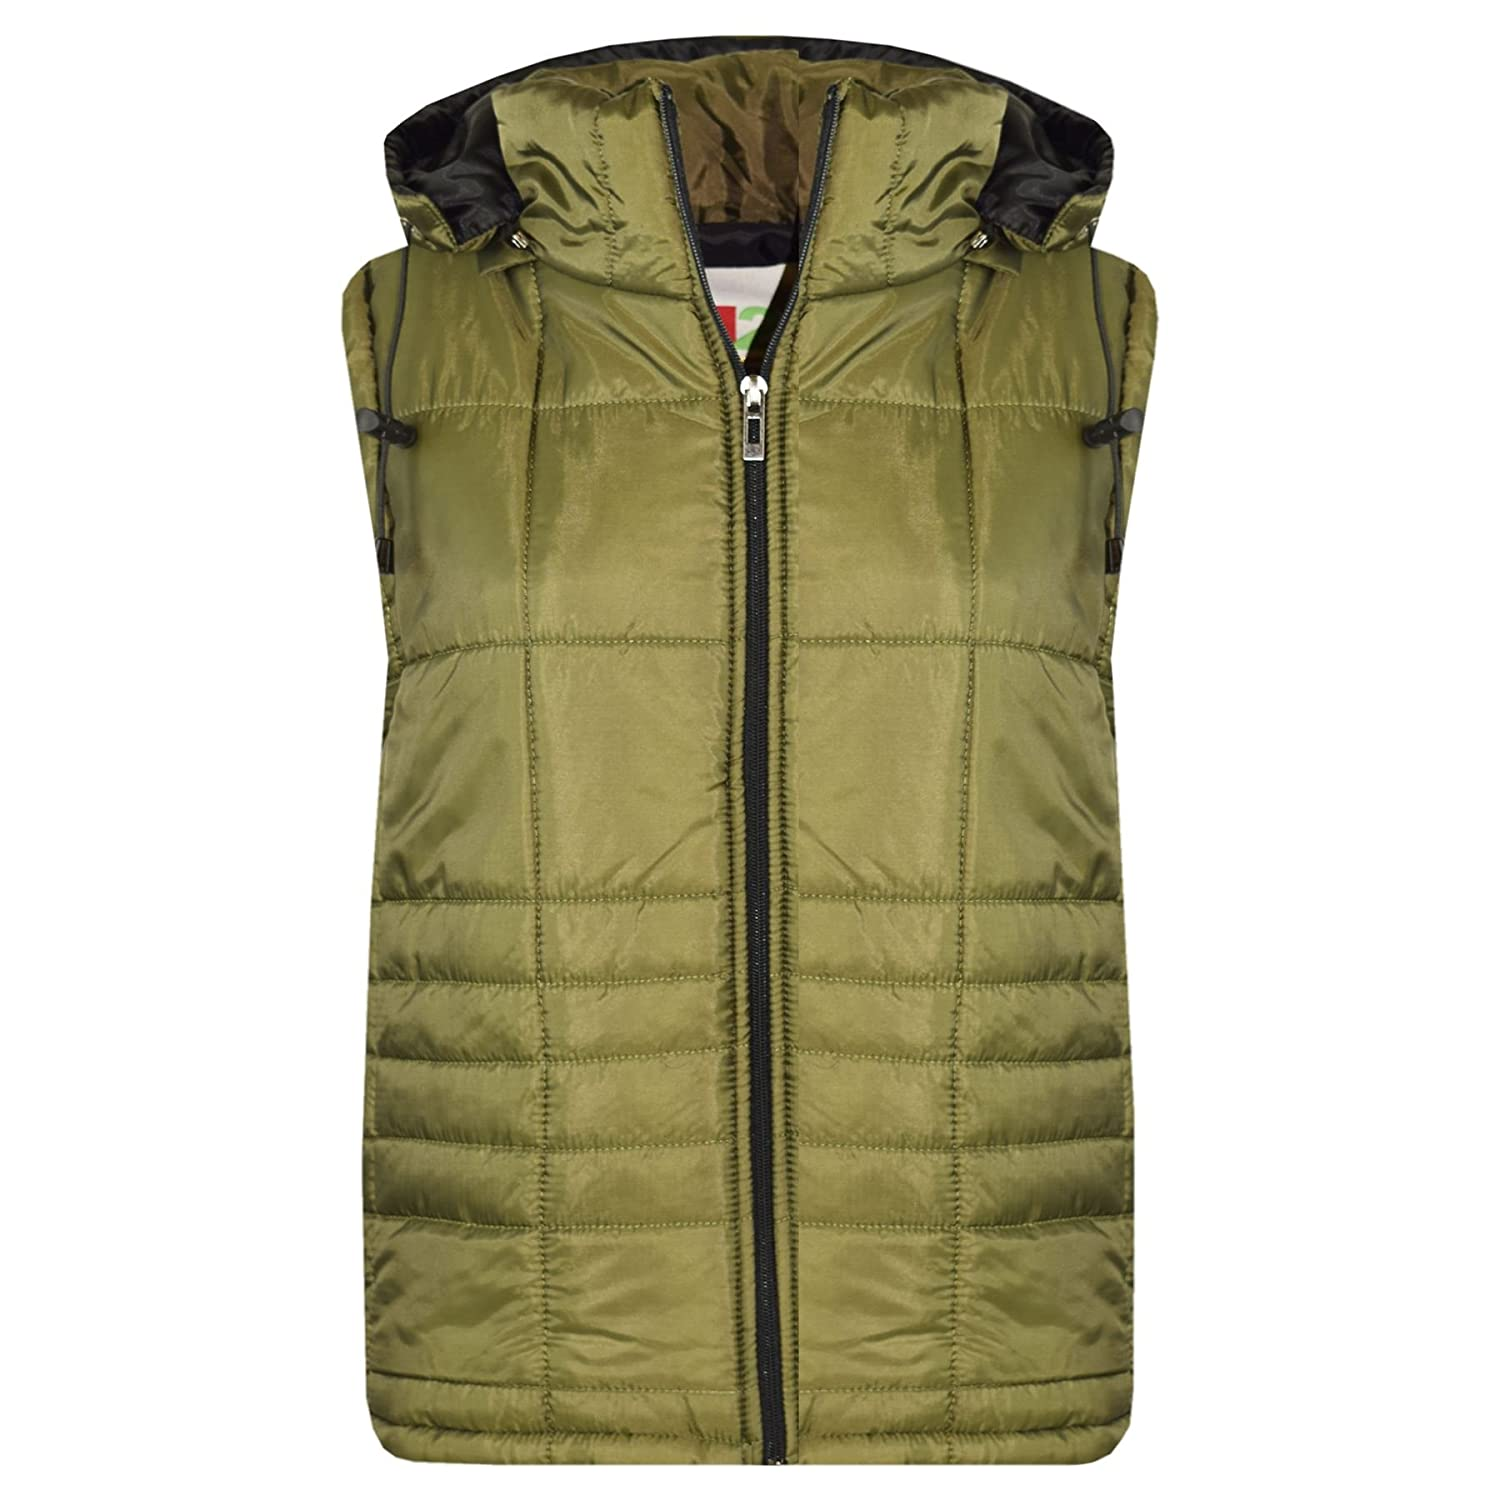 A2Z 4 Kids/® Kids Girls Boys Designers Olive Sleeveless Hooded Padded Quilted Lined Gilet Bodywarmer Fashion Jackets Age 5 6 7 8 9 10 11 12 13 Years